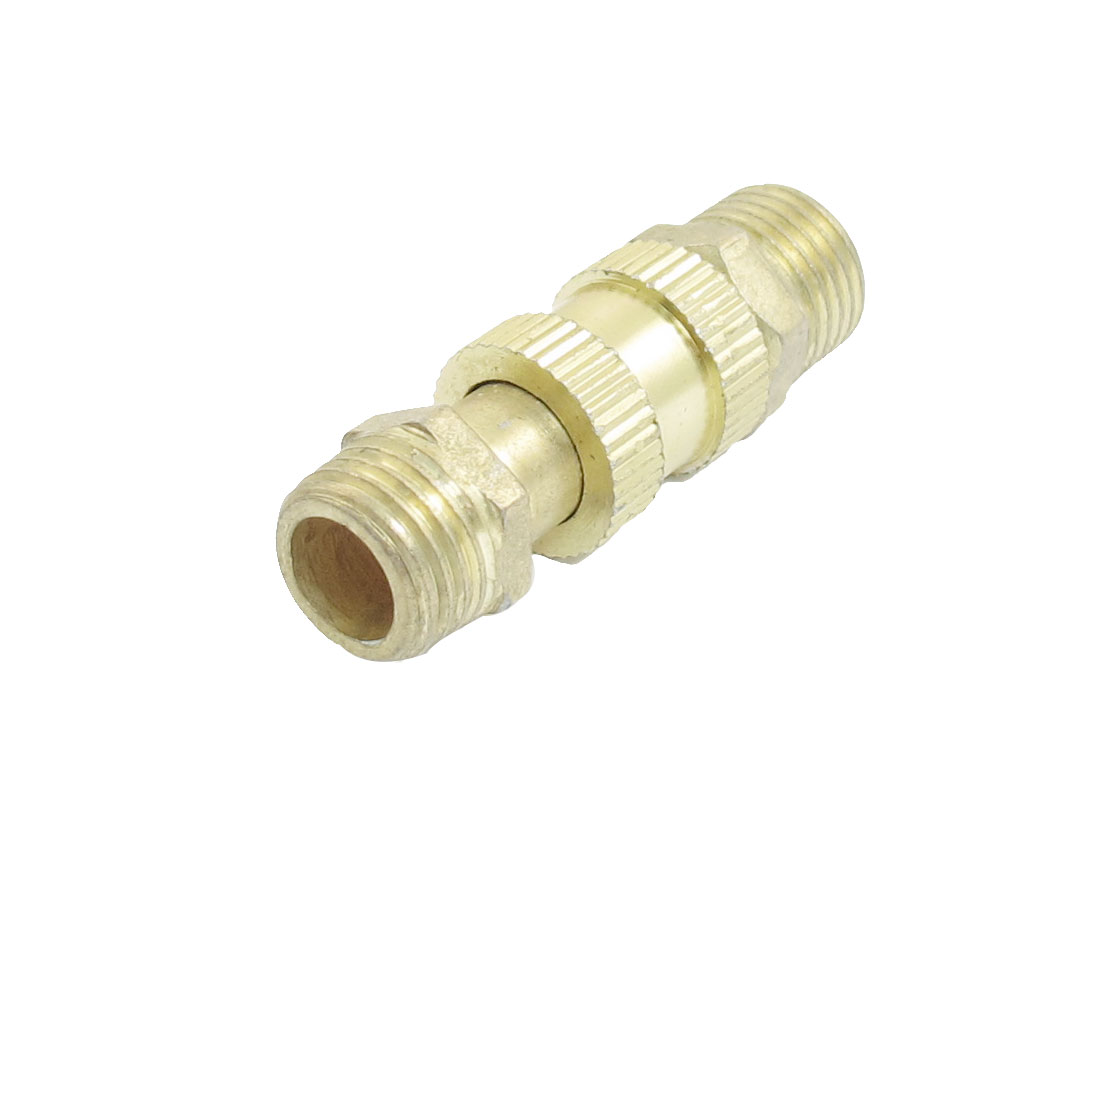 "1/2"" Male Thread to 1/2"" Female Thread Brass Quick Adapter Fitting"